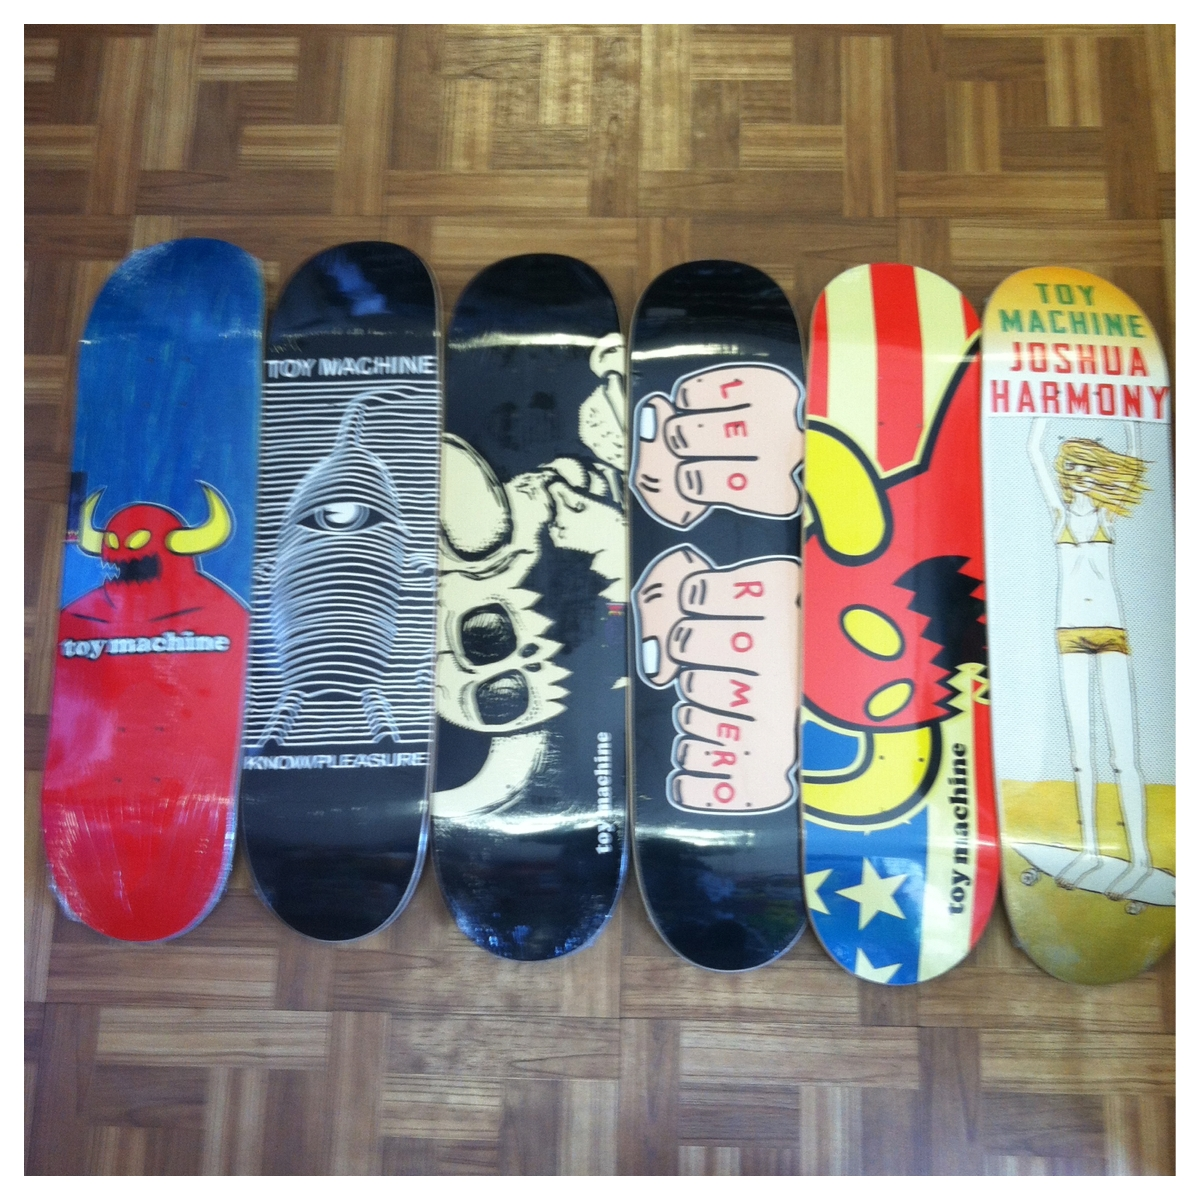 All New Boards From TOY MACHINE Just Came In vú skateboard shop